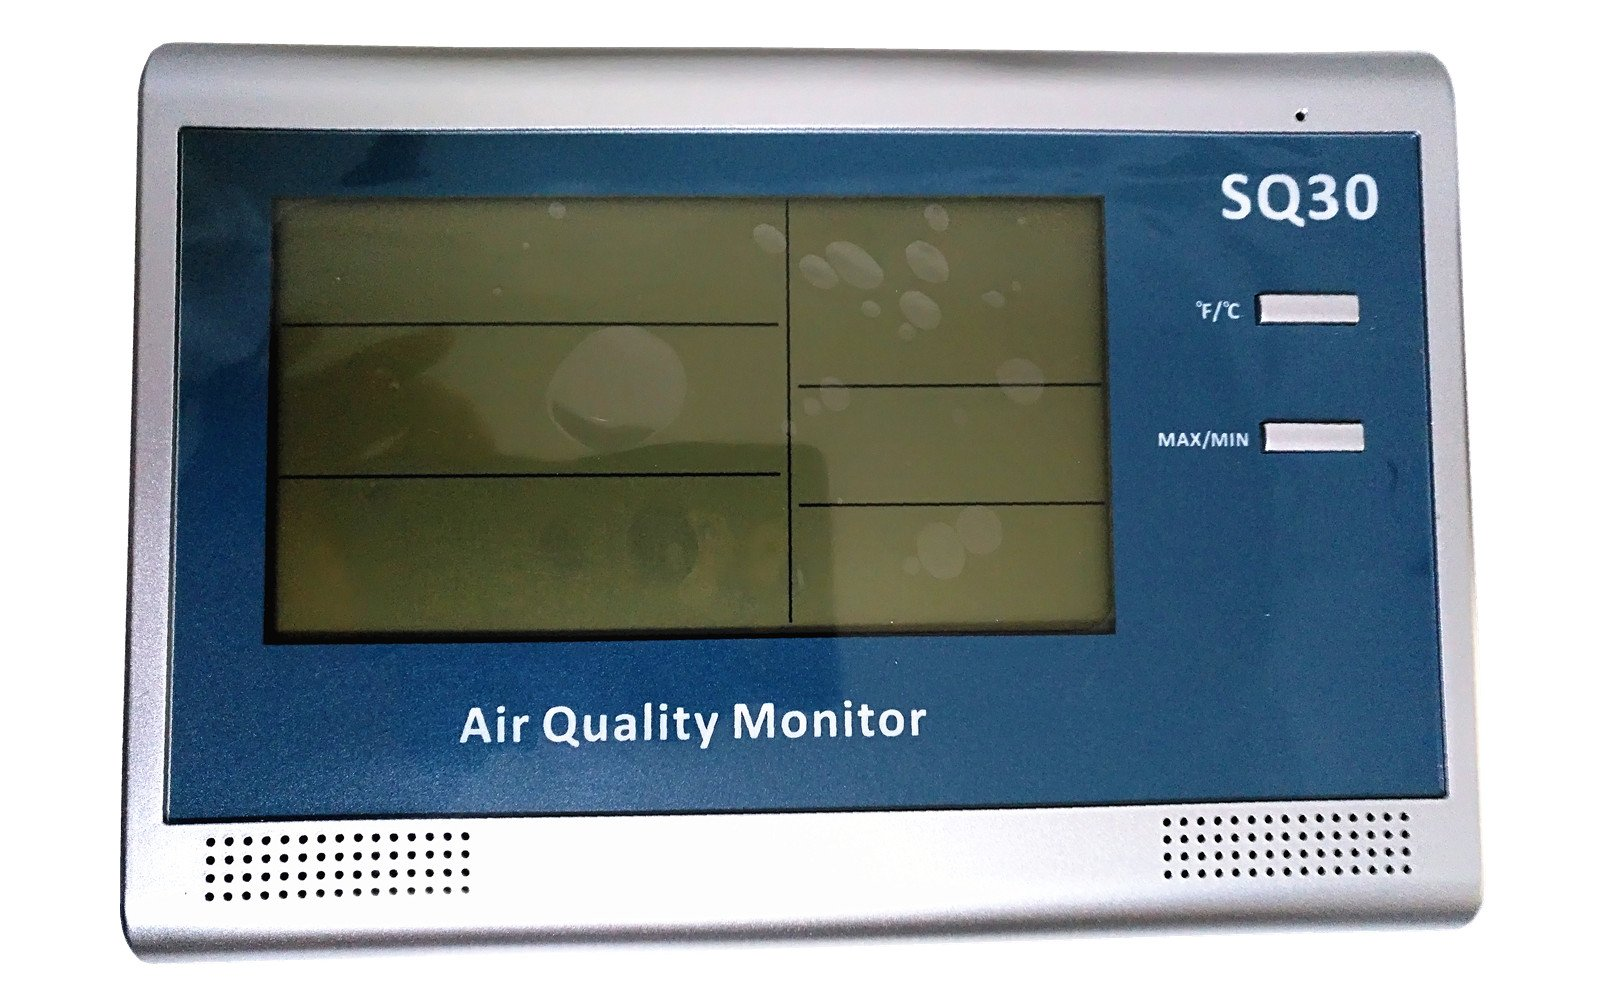 Santacary SQ30 Wall Mount or Desktop Air Quality Monitor, Accurate Measuring PM2.5, PM10, CO2, Humidity and Temperature, Multifunctional Indoor Air Quality Monitor